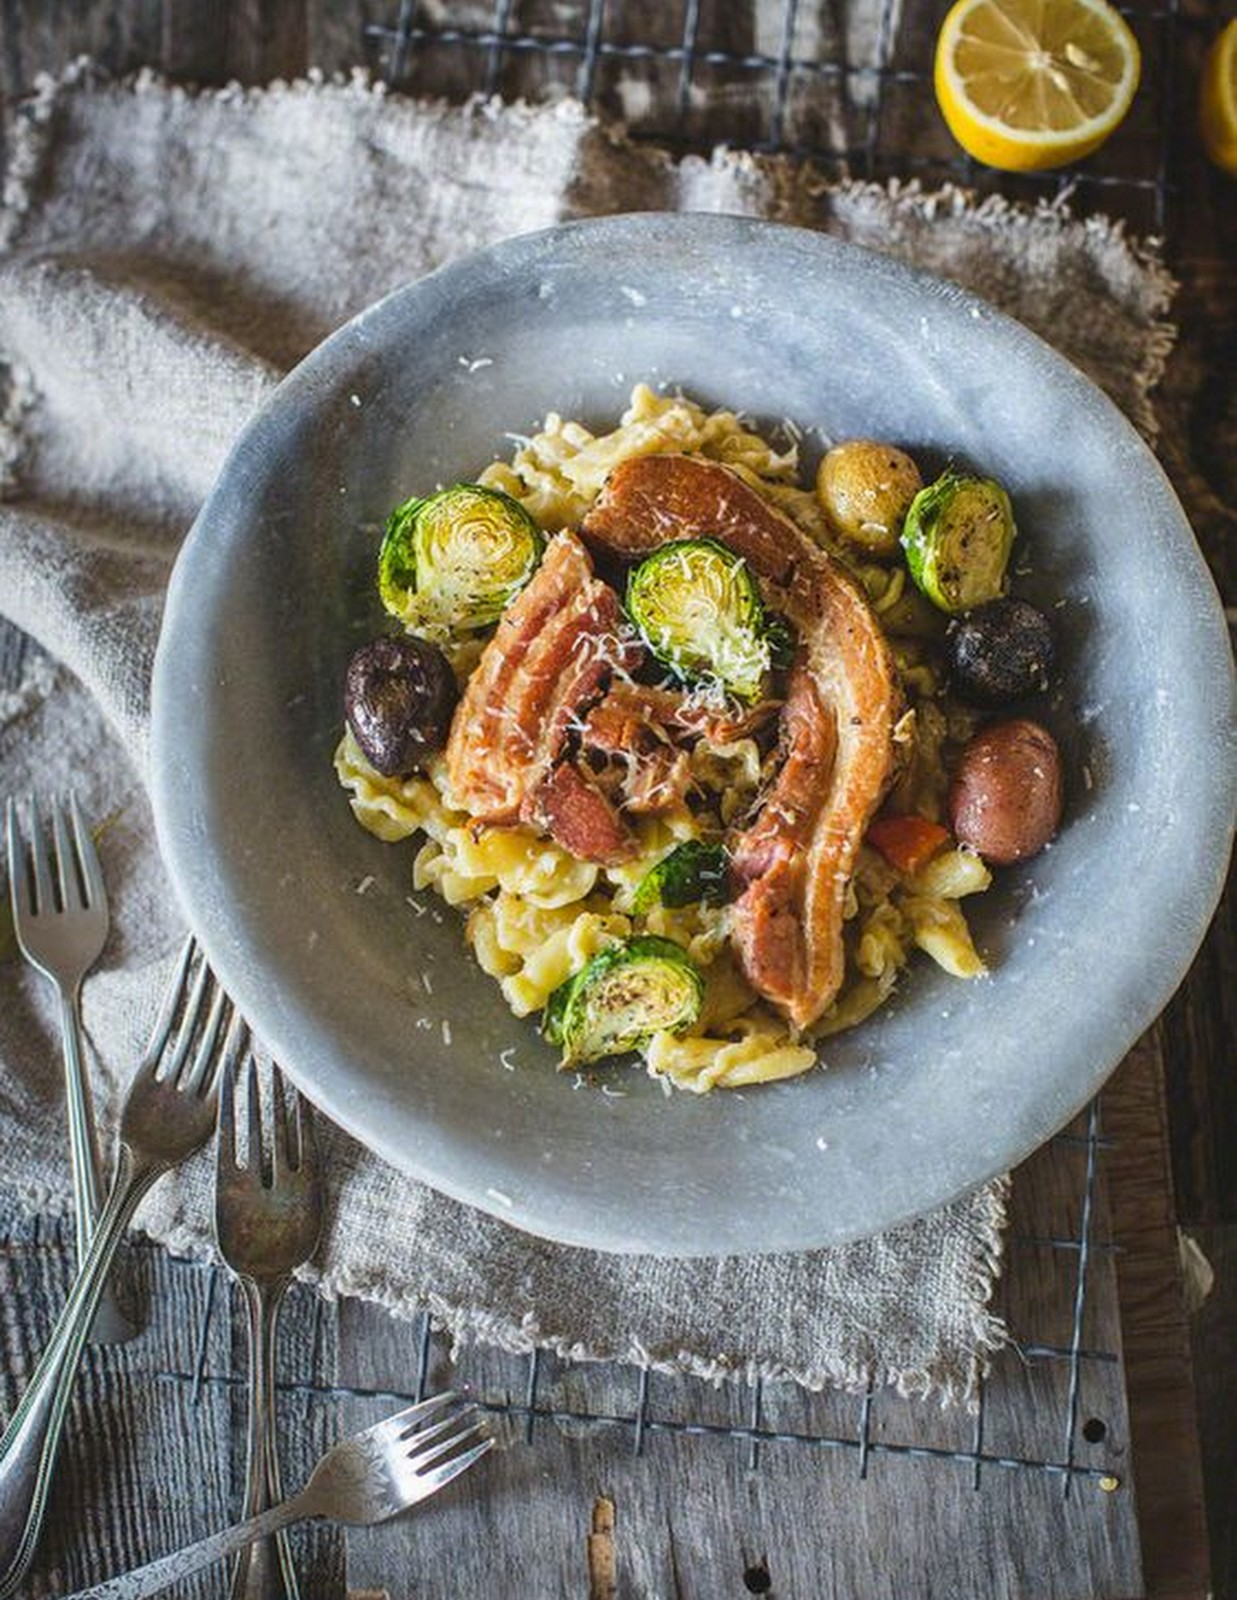 Gigli with braised pancetta